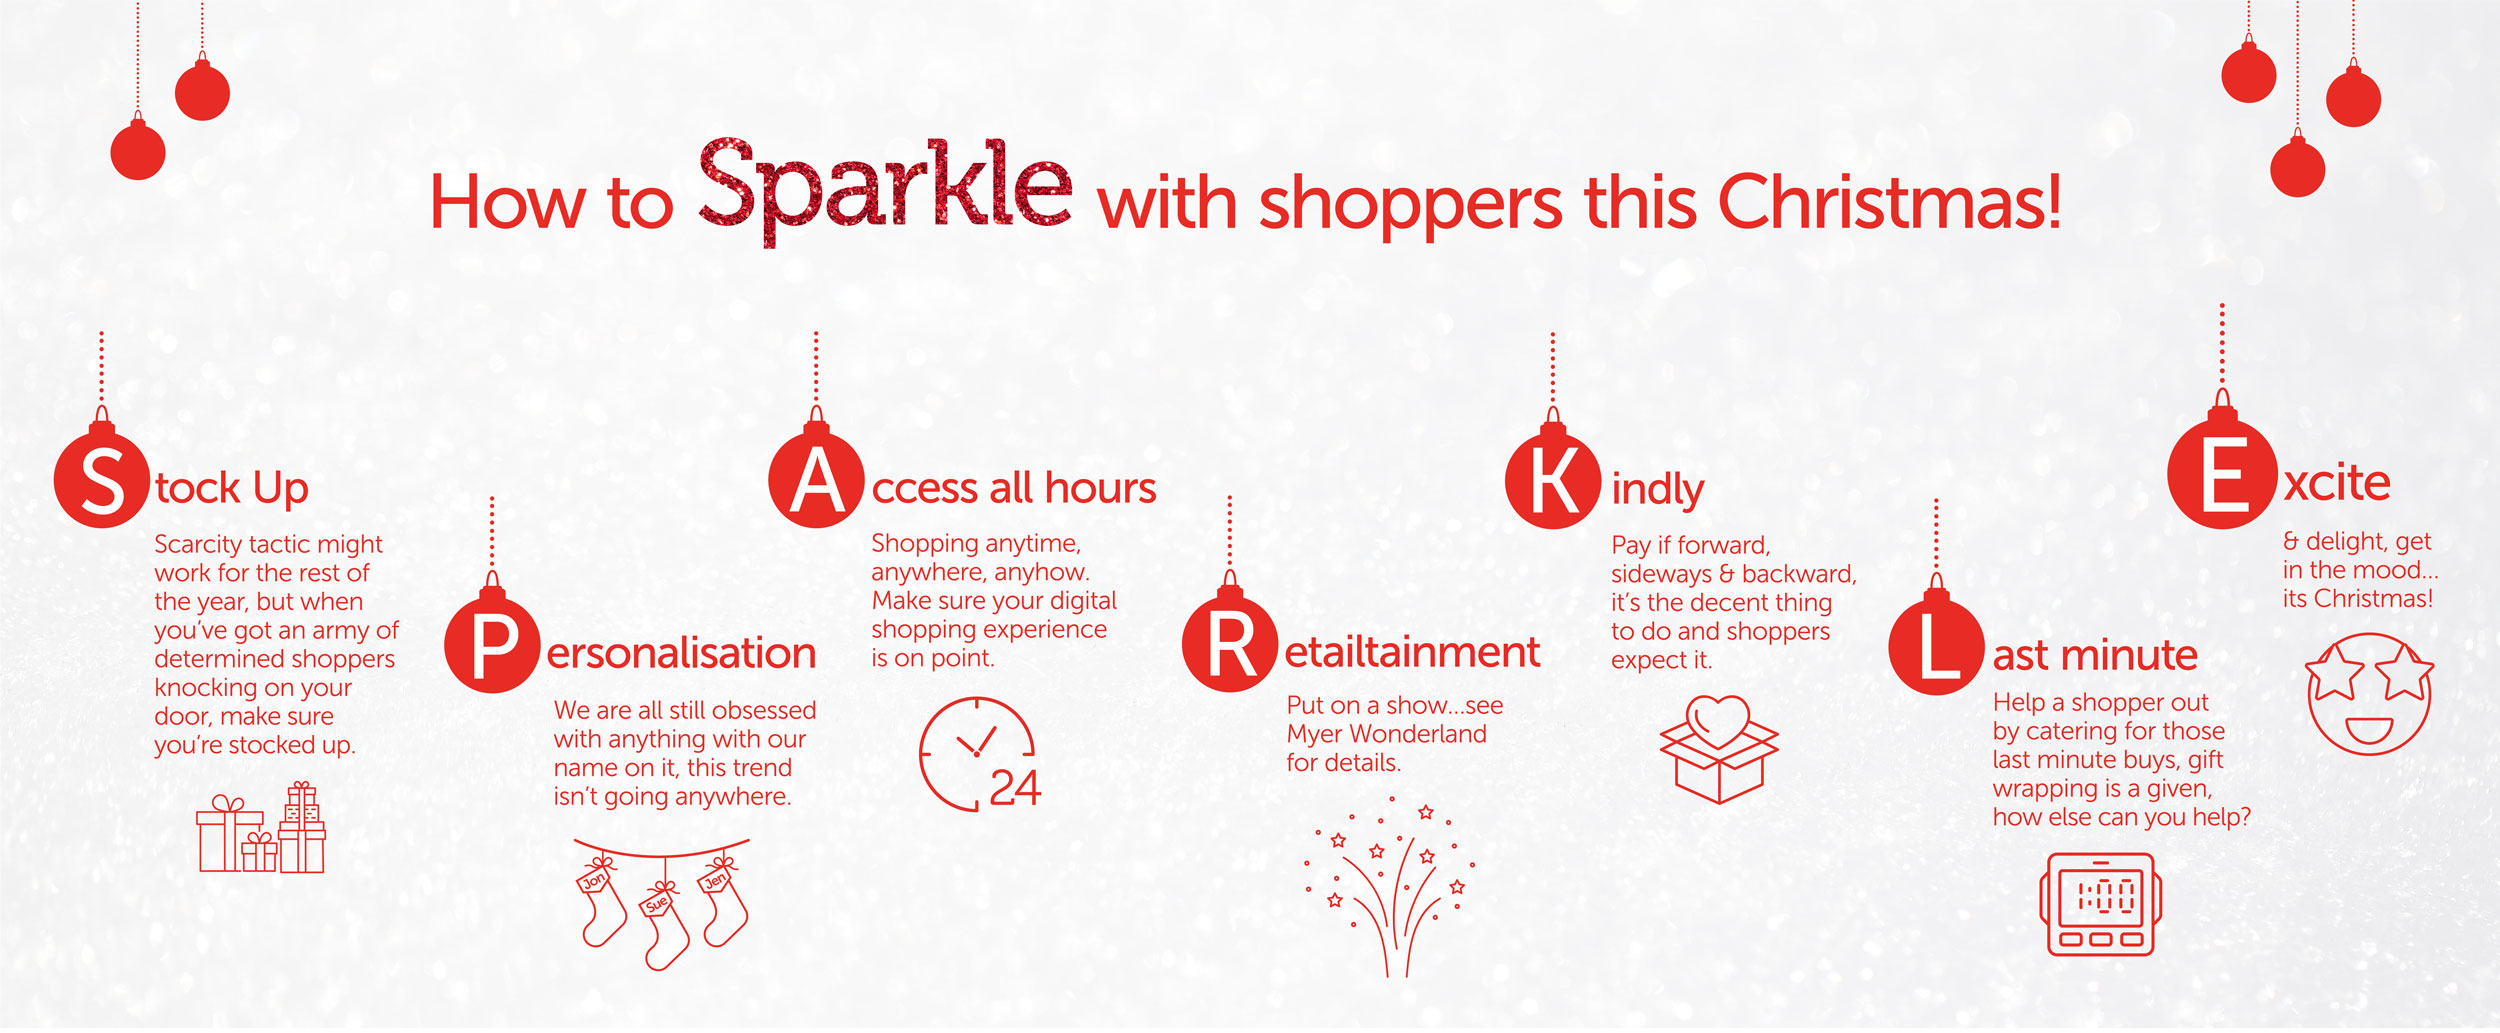 31ST sparkle this christmas infographic